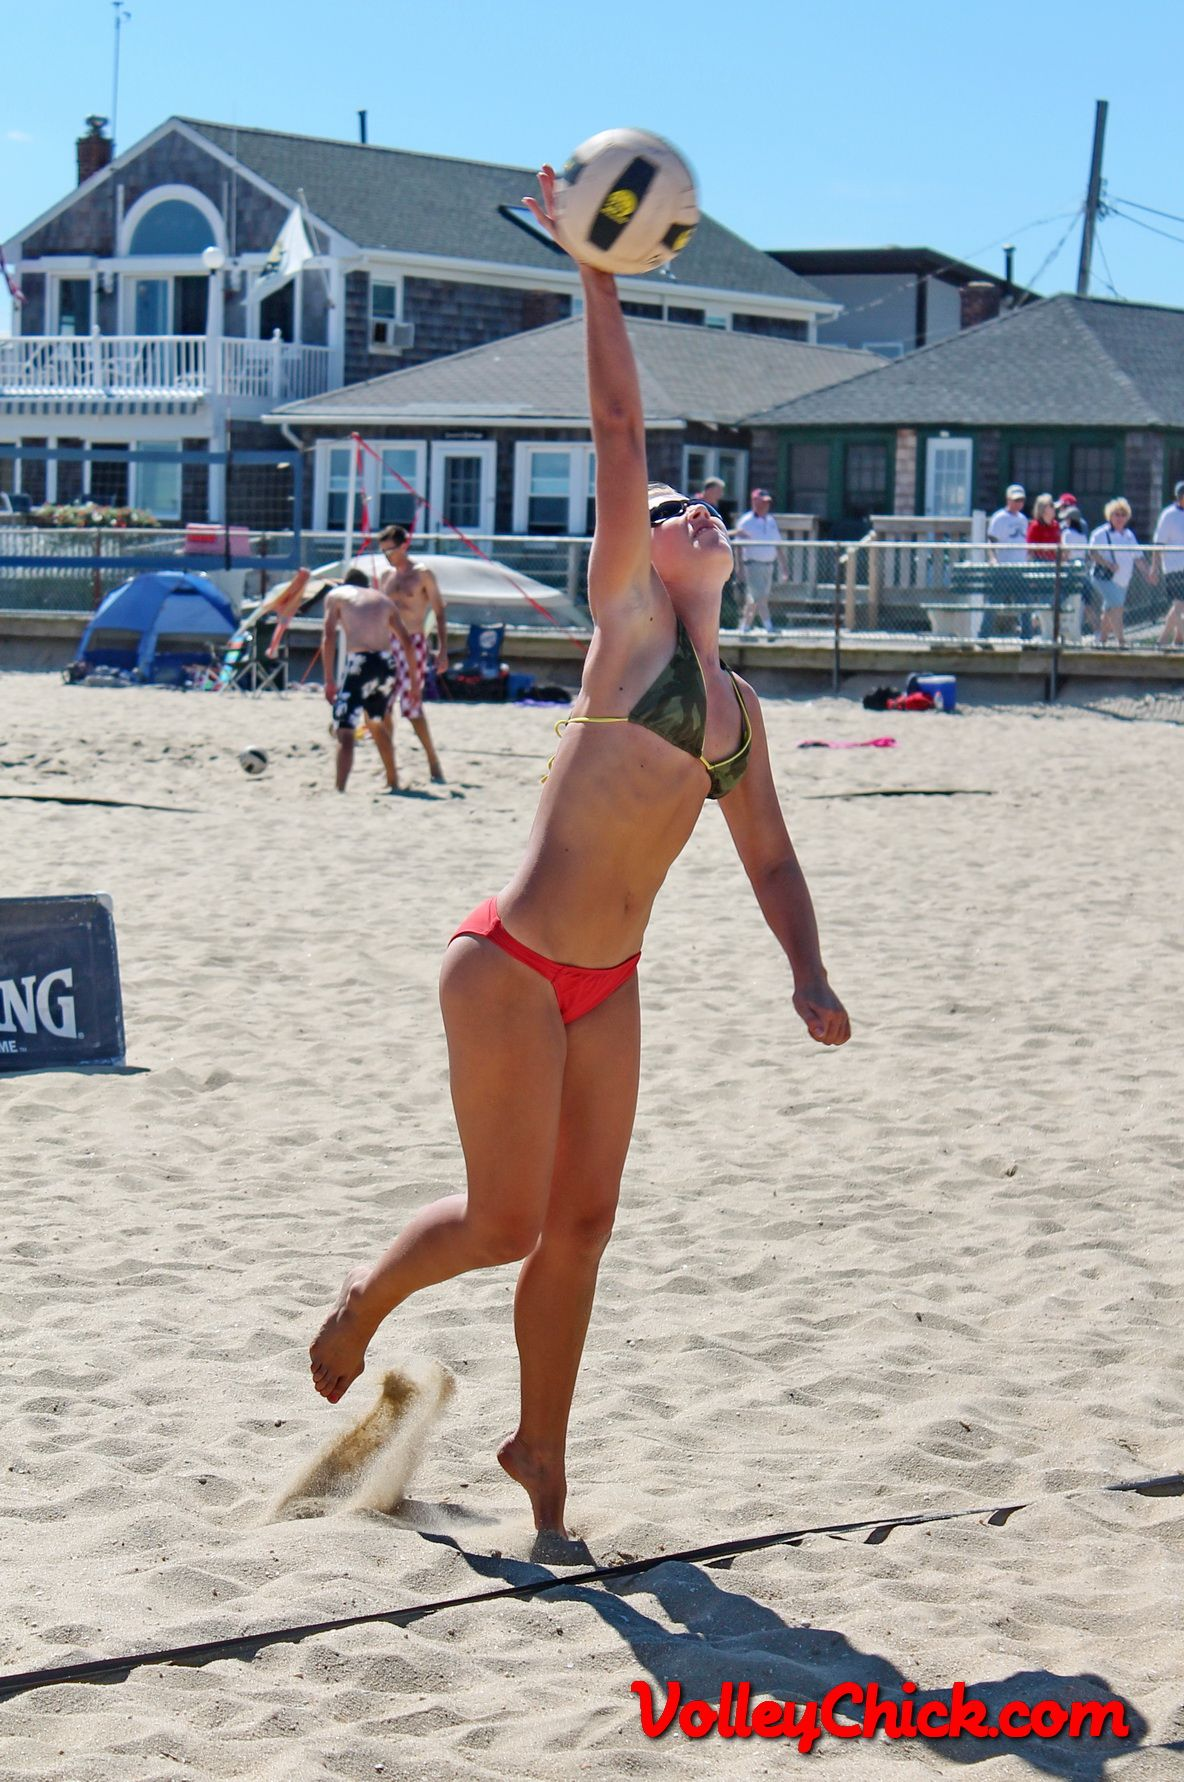 Beach Volleyball Rachel In Point Pleasant Nj Volley